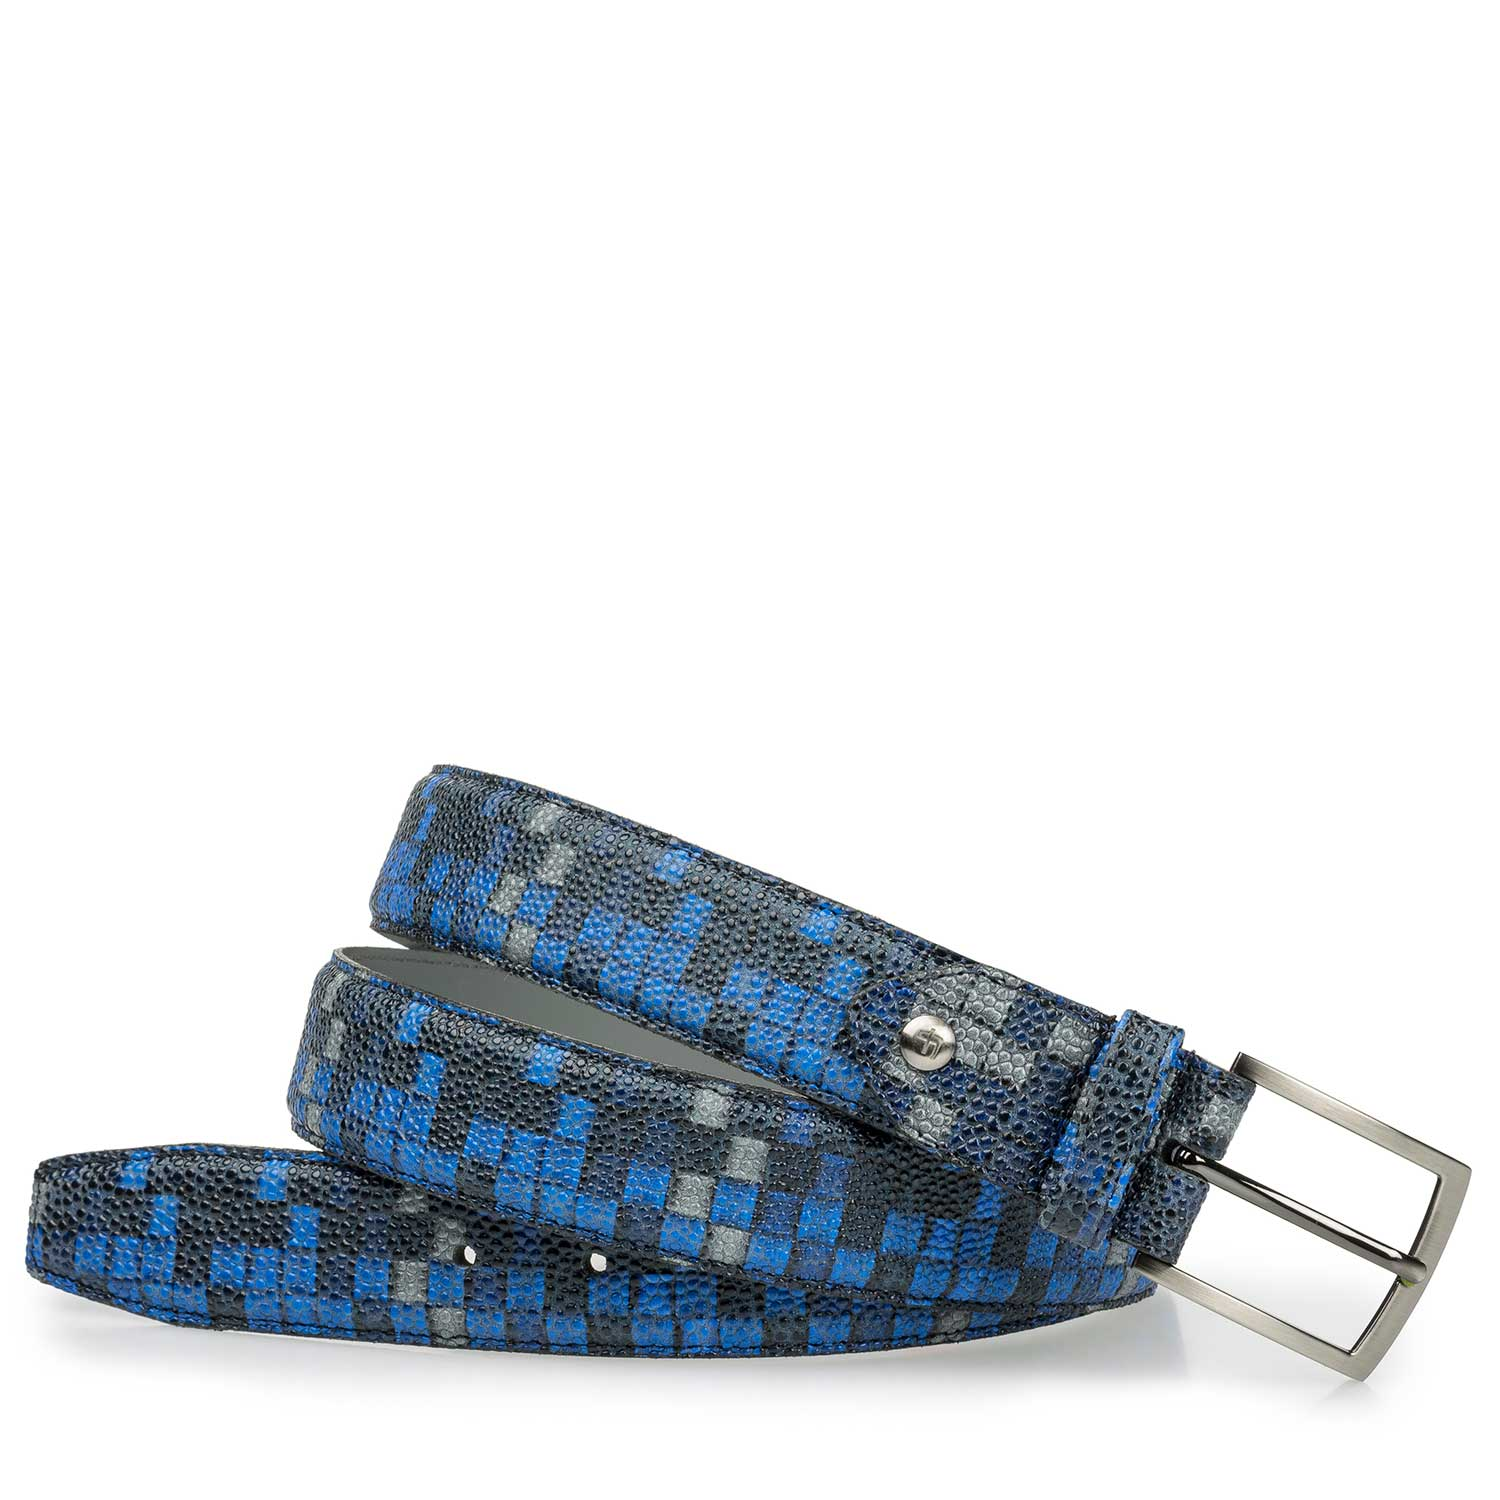 75190/16 - Blue belt with graphic print